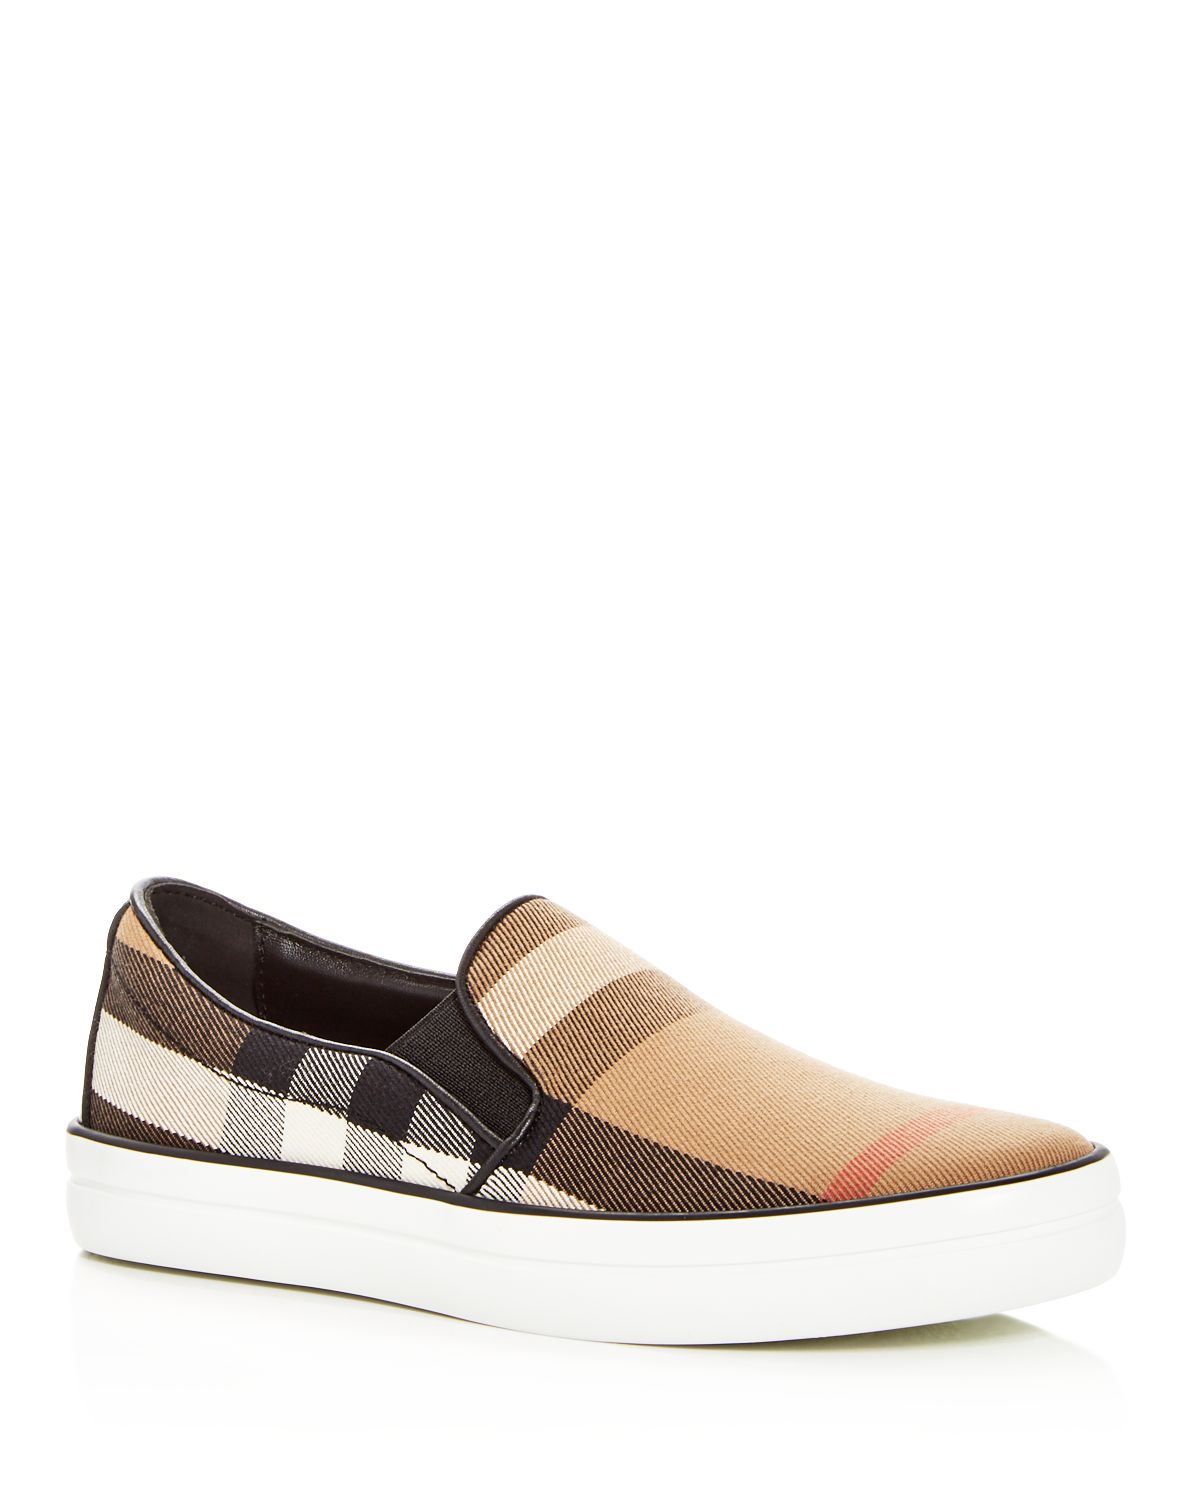 Burberry Check Gauden Slip-On Sneakers